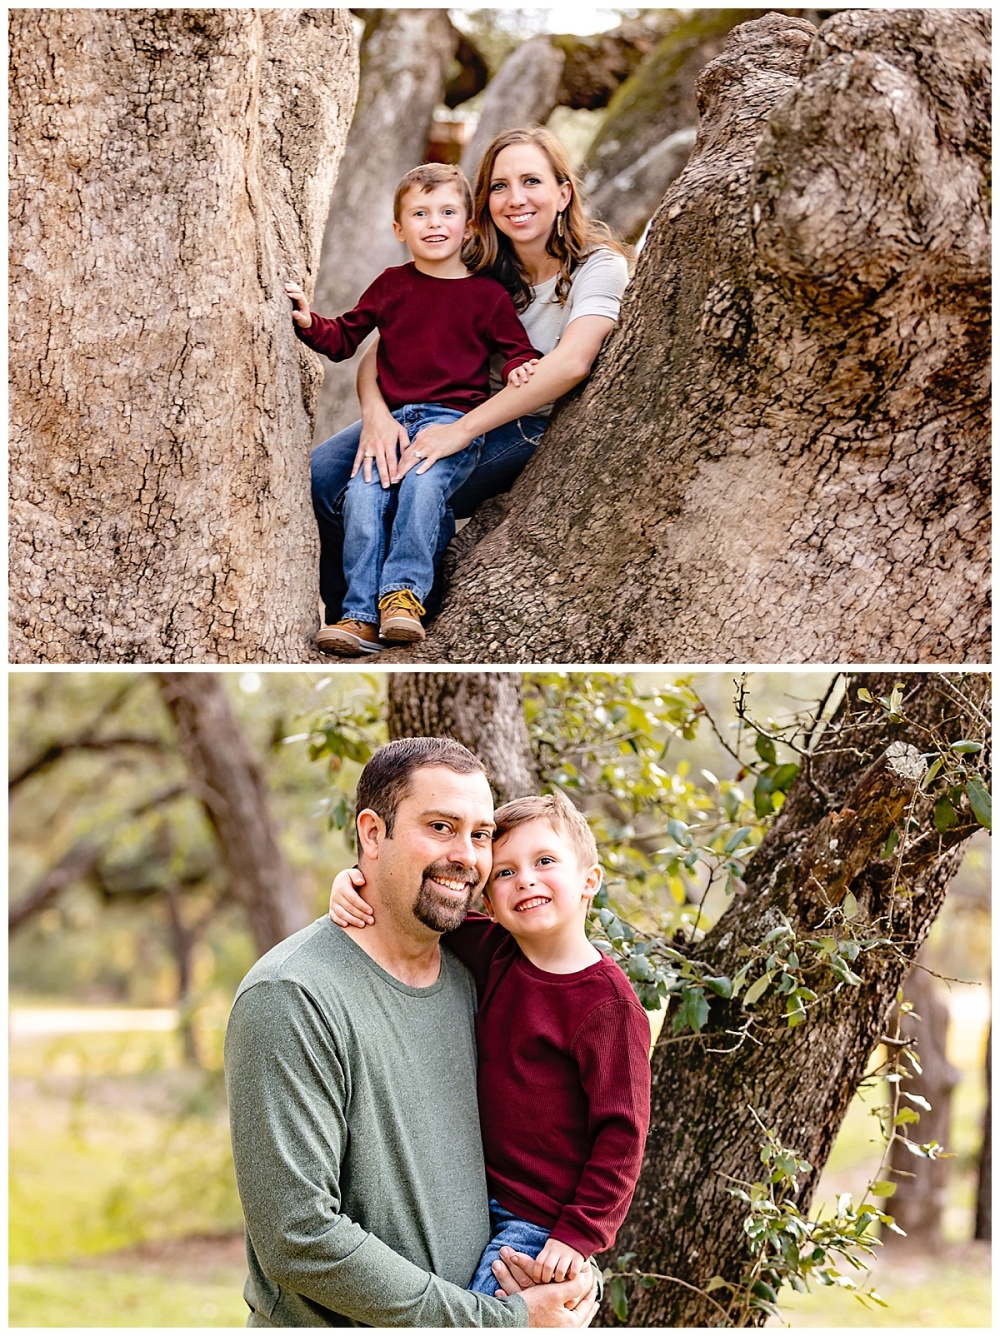 Family-Photographer-LaVernia-Texas-Carly-Barton-Photography-Latham_0005.jpg